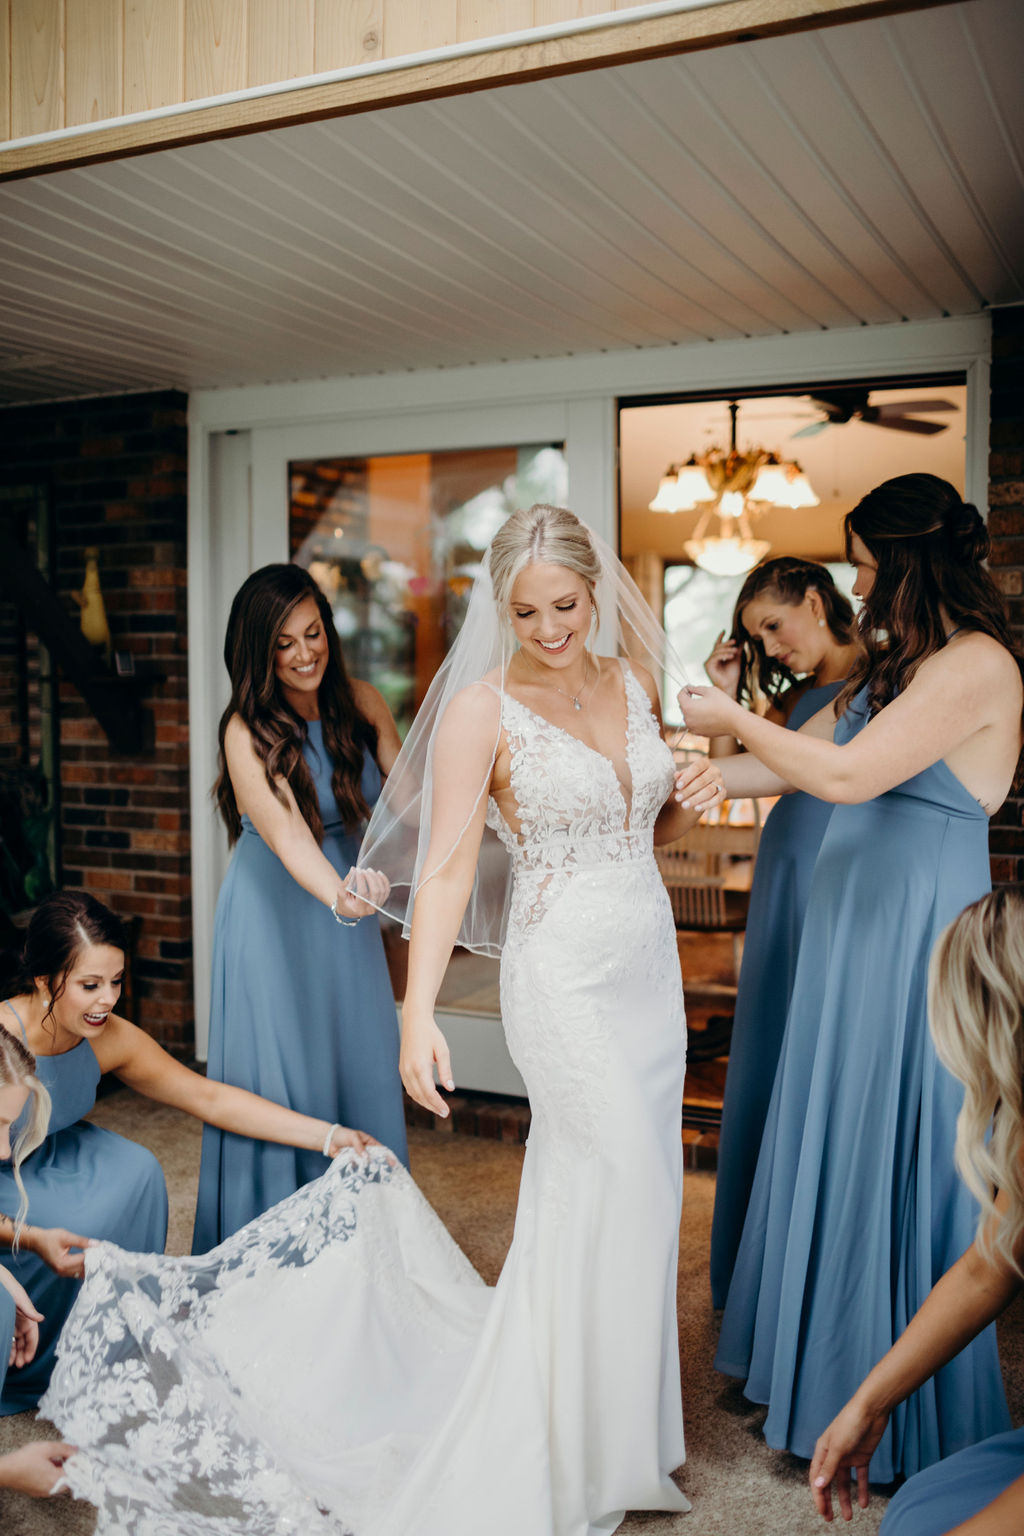 Bridesmaids smiling at brides gown